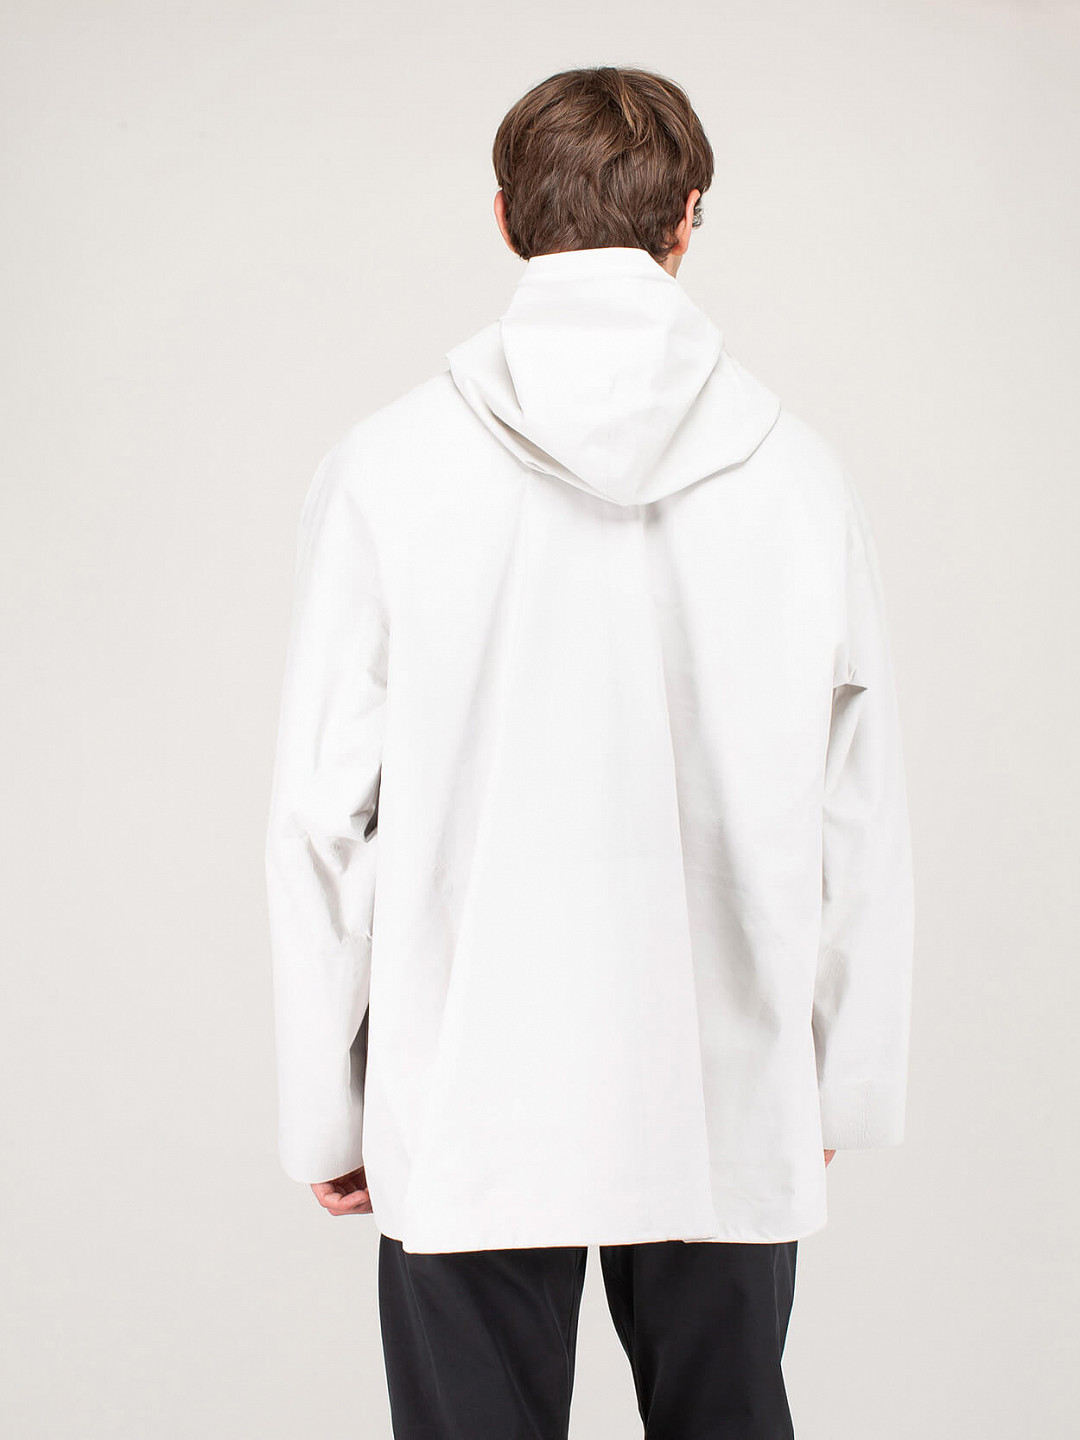 Blouson Knit Leather off white